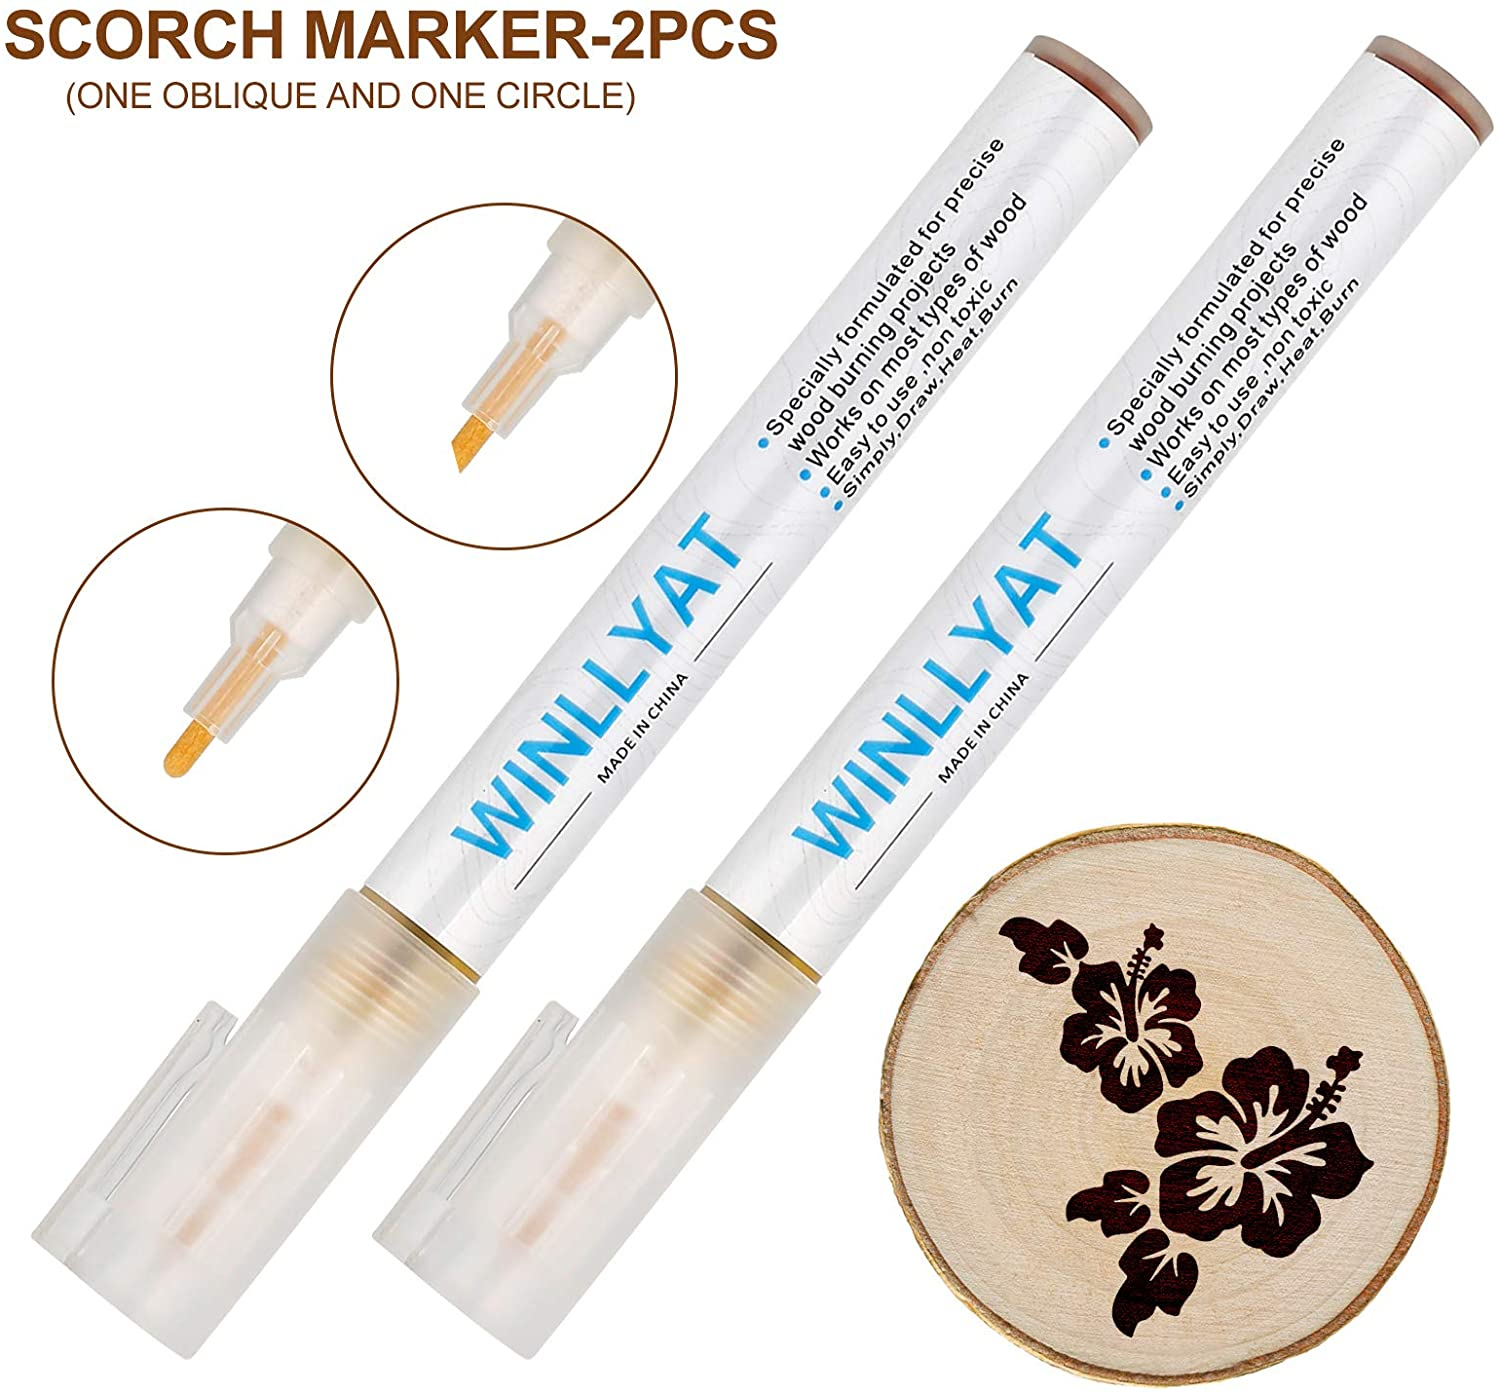 Oblique Head and Round Head 2 PCS Scorch Marker Wood Burning Pen Oblique Head and Round Head Winllyat Chemical Wood Burned Marker Pen for DIY Projects